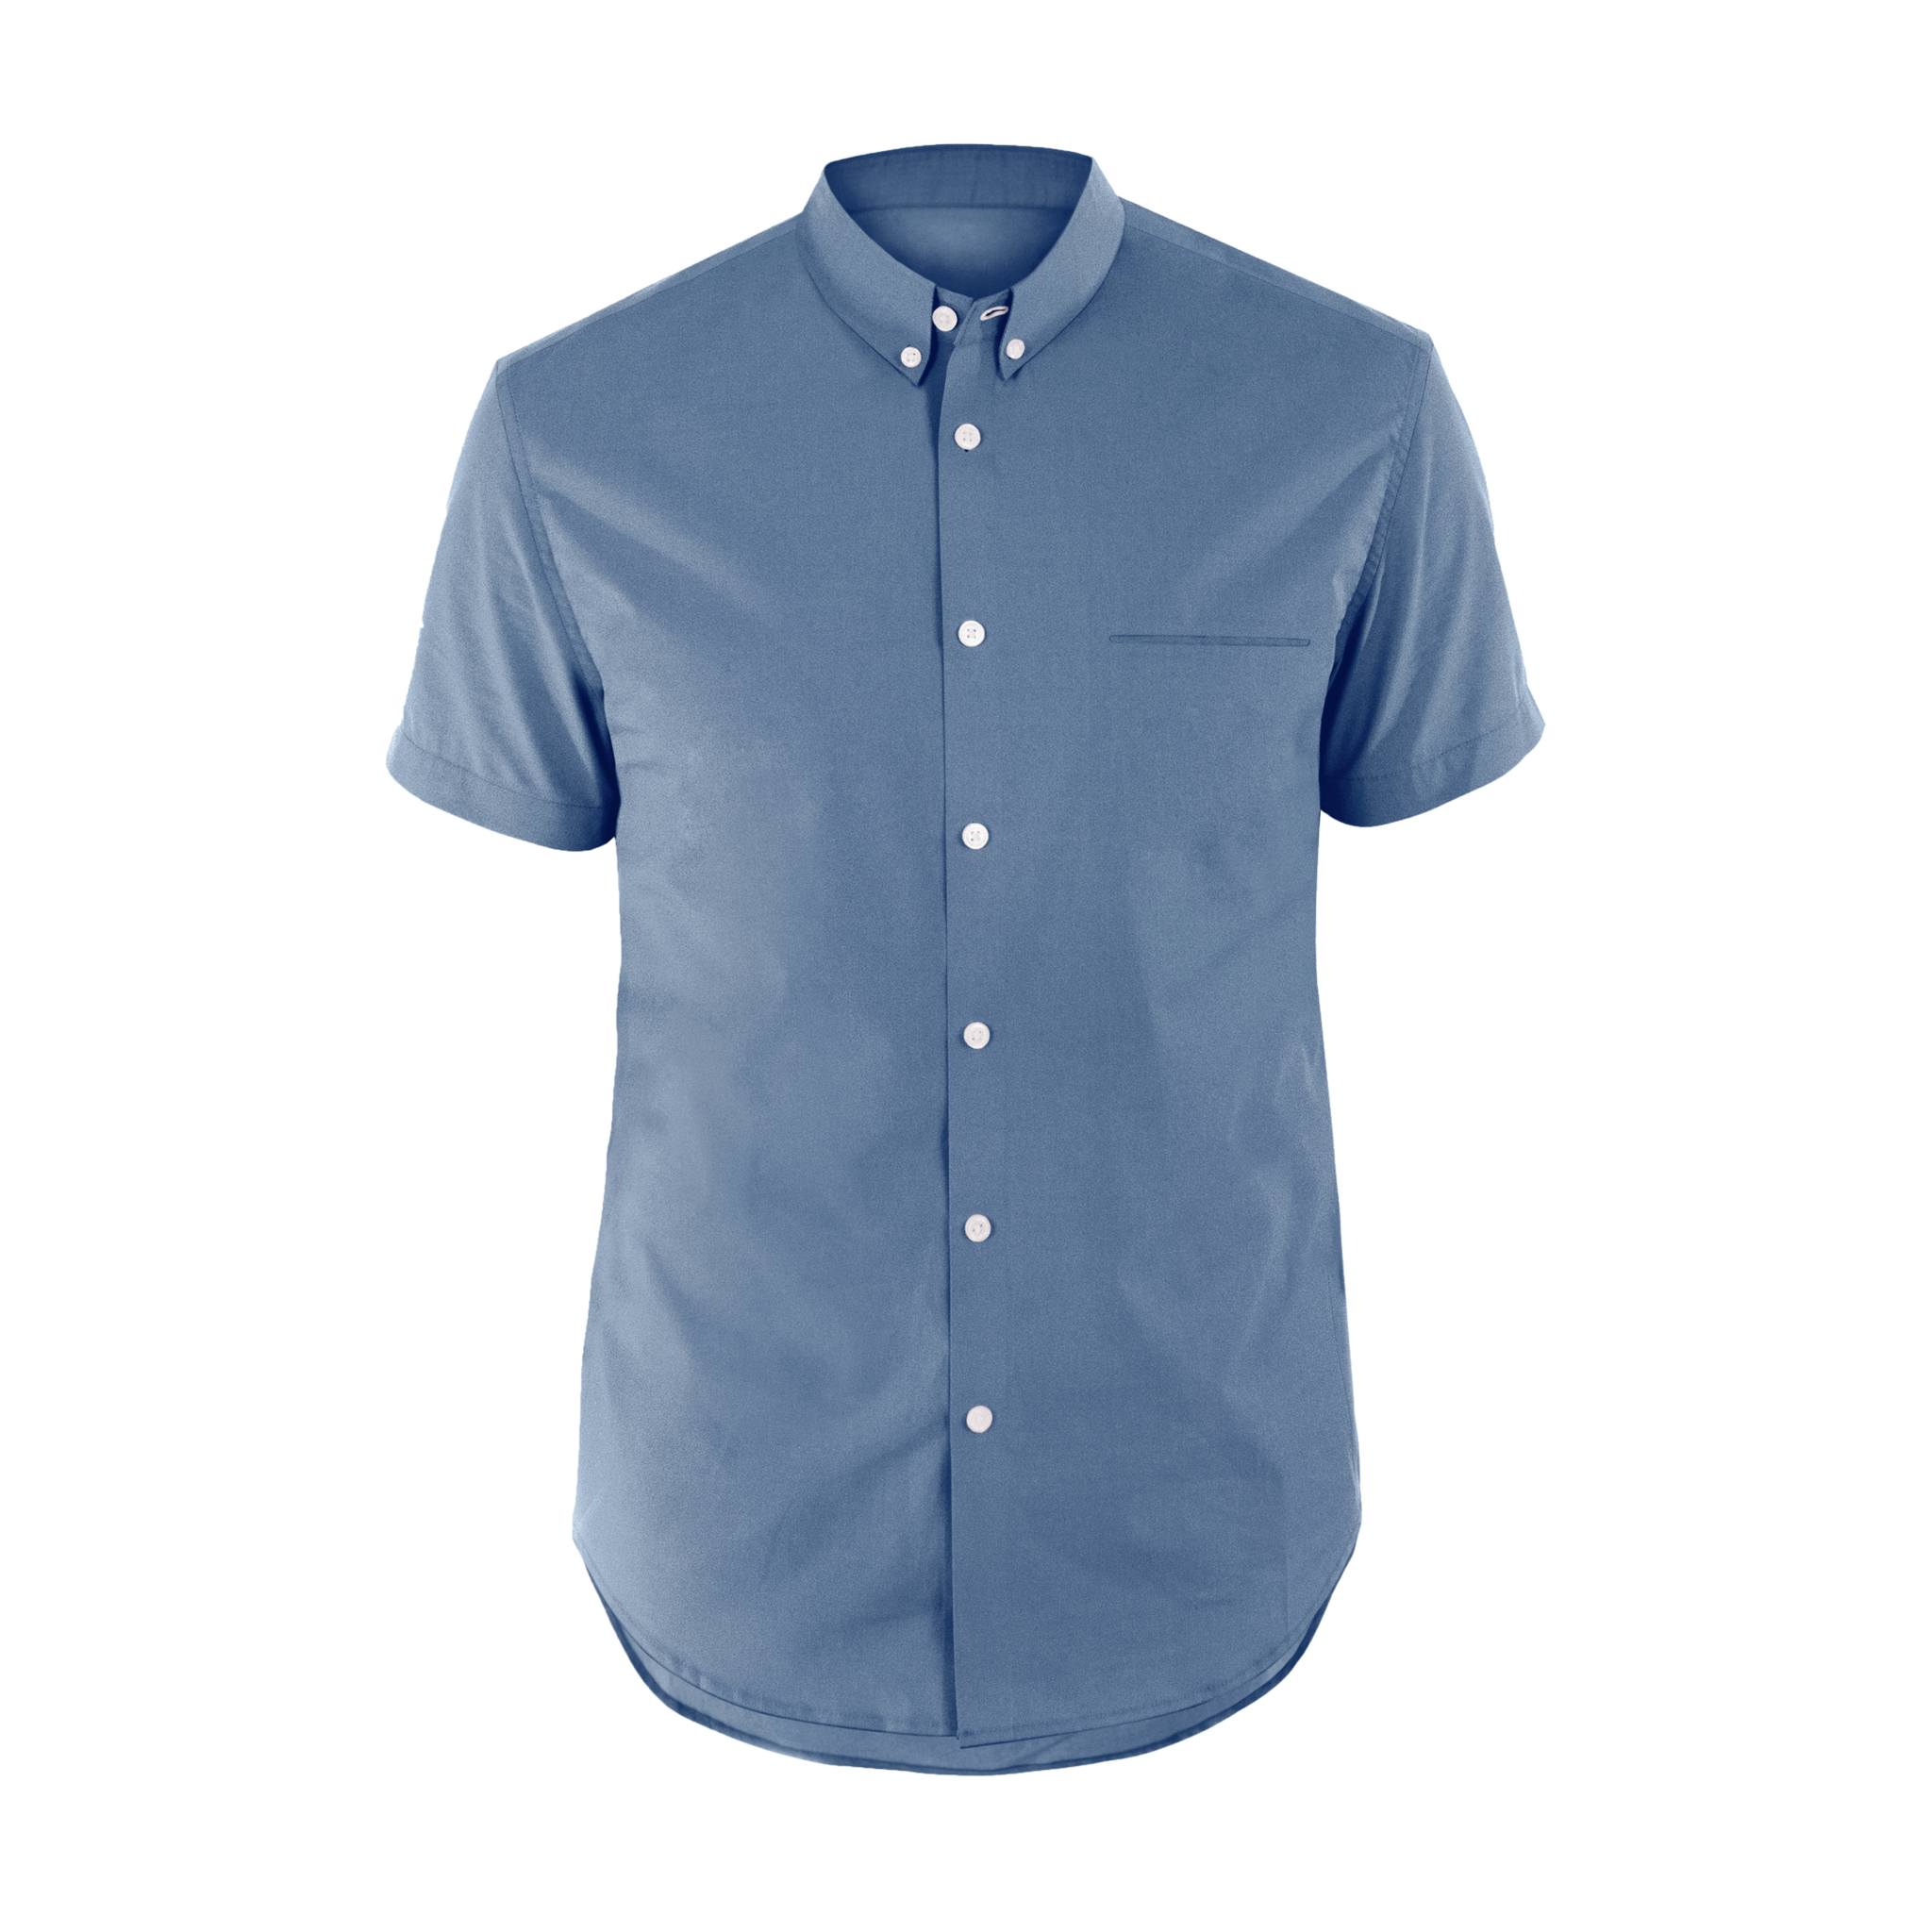 Short Sleeve Button Down Shirt, Gemini Shortsleeve | MINISTRY OF SUPPLY